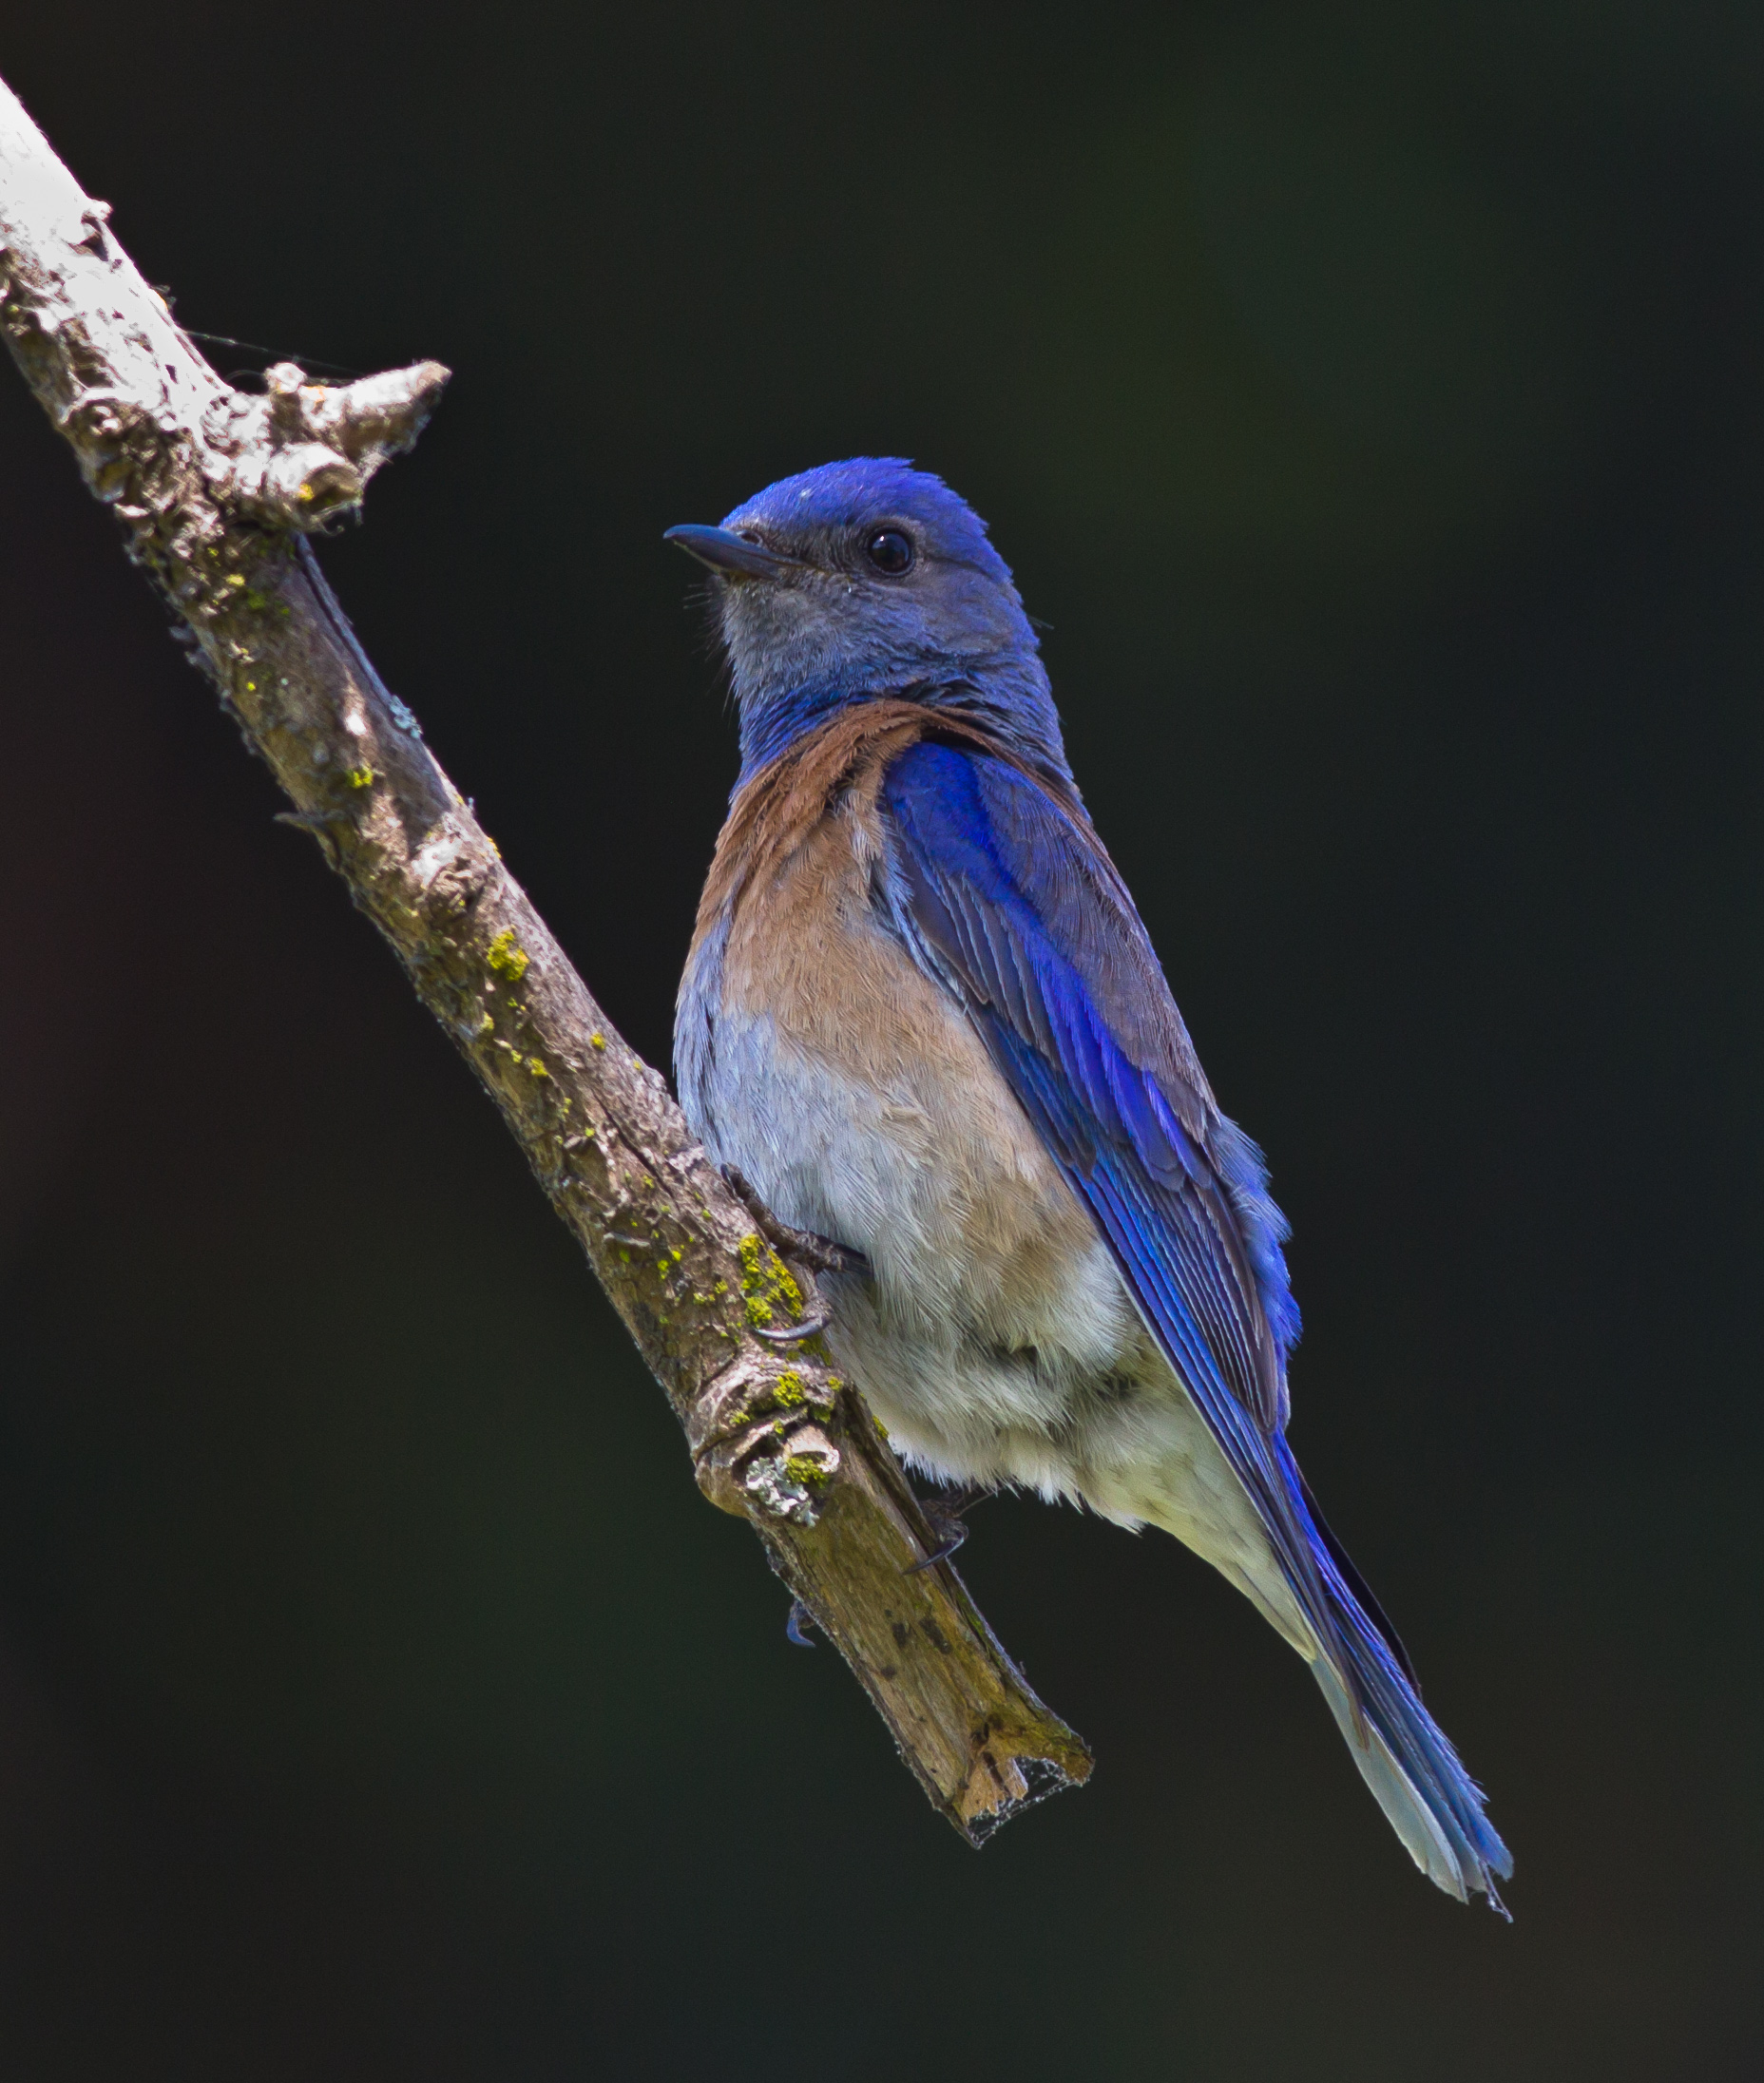 Male Western bluebirds attract a lot of attention with their brilliant colors. (Allen Hirsch)